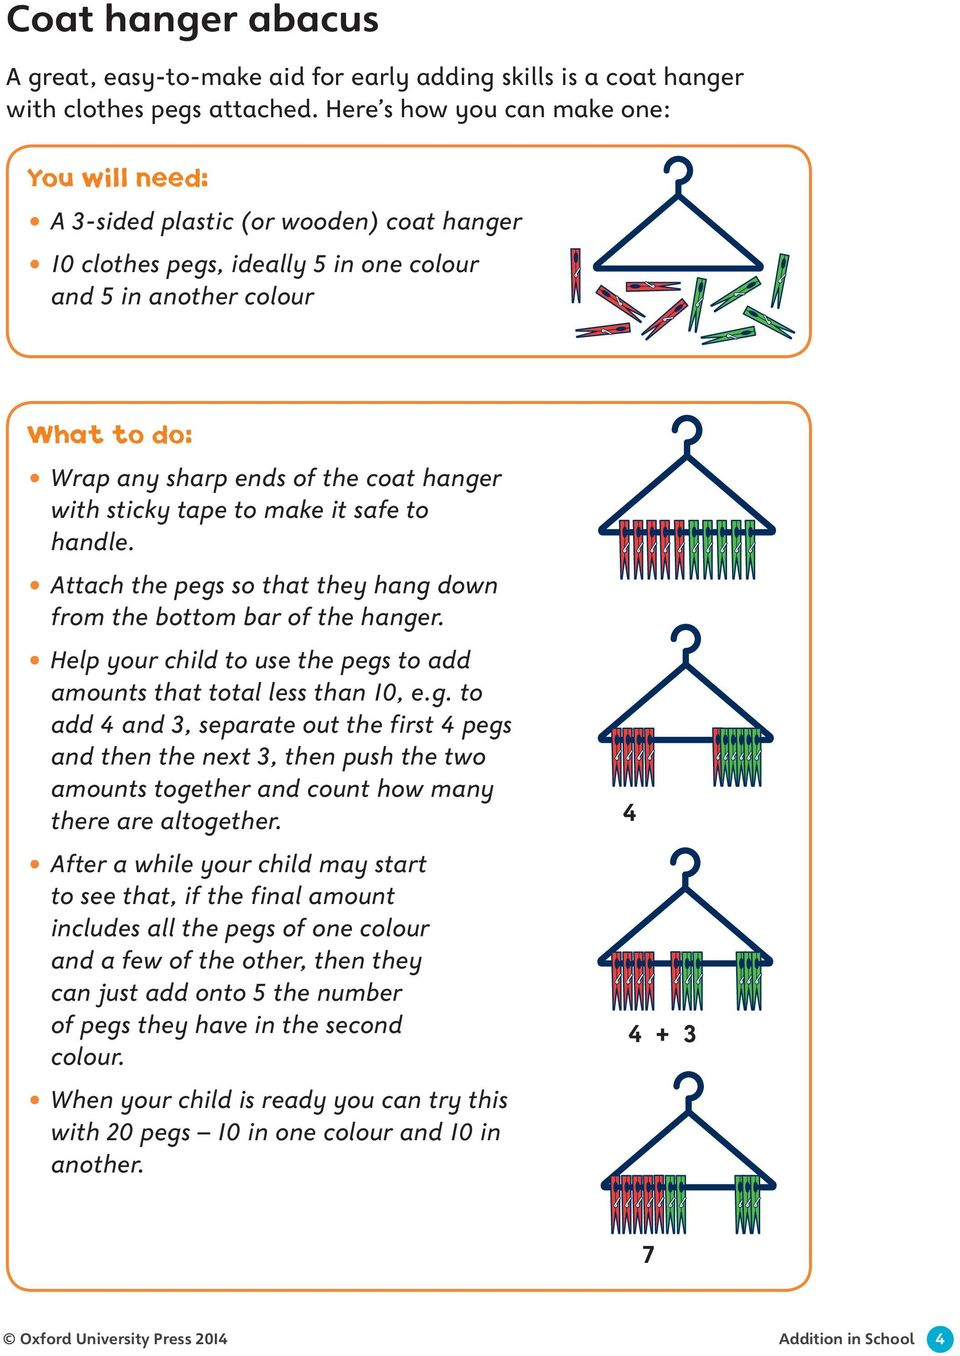 hanger with sticky tape to make it safe to handle. Attach the pegs so that they hang down from the bottom bar of the hanger. Help your child to use the pegs to add amounts that total less than 10, e.